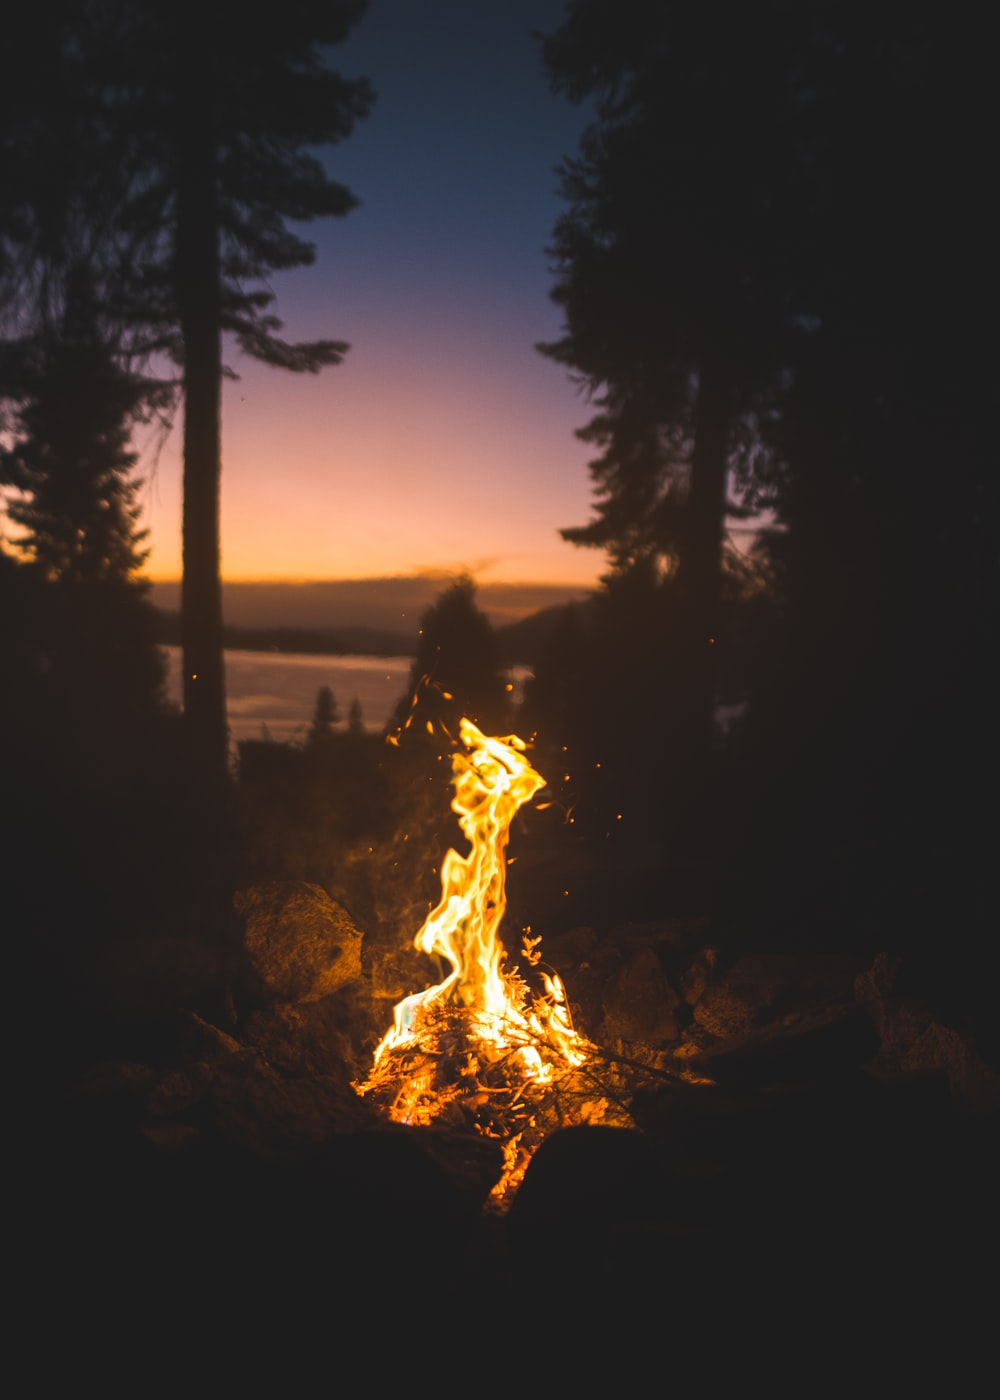 firepit near trees during night time